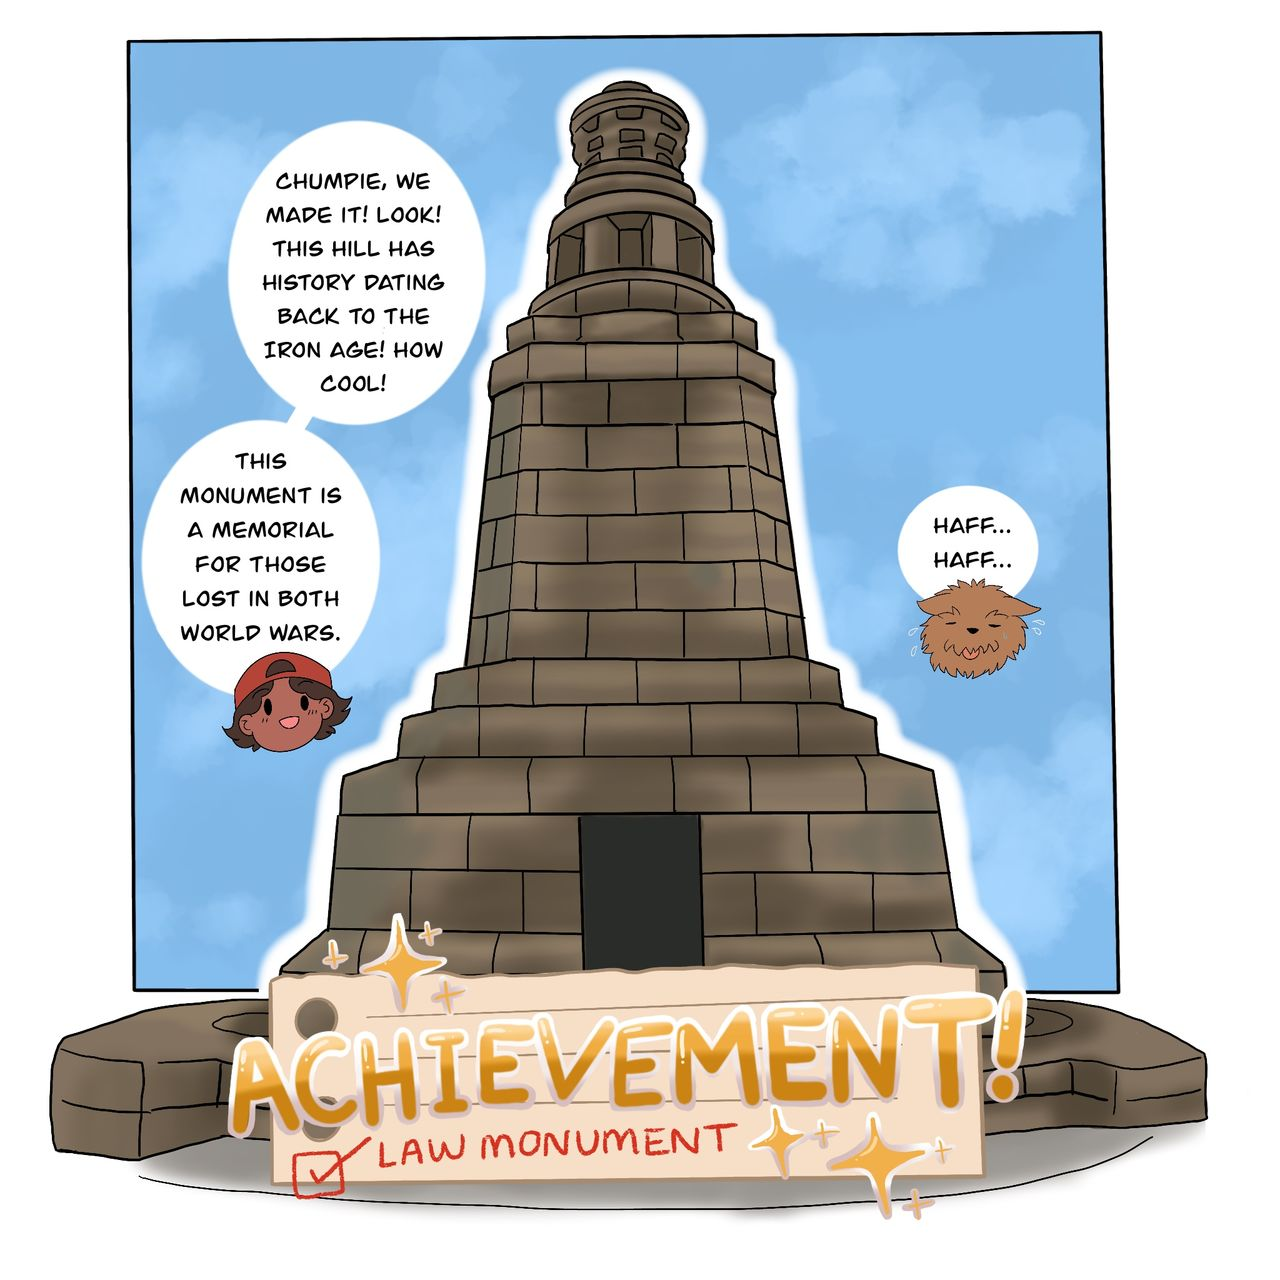 "This webcomic panel show the Dundee Law monument with the character's face and the dog's head beside it talking about the monument being a memorial for those lost in the World Wars. A banner is across the bottom that reads ""achievement Law Monument"" with a big tick beside it like in a videogame."